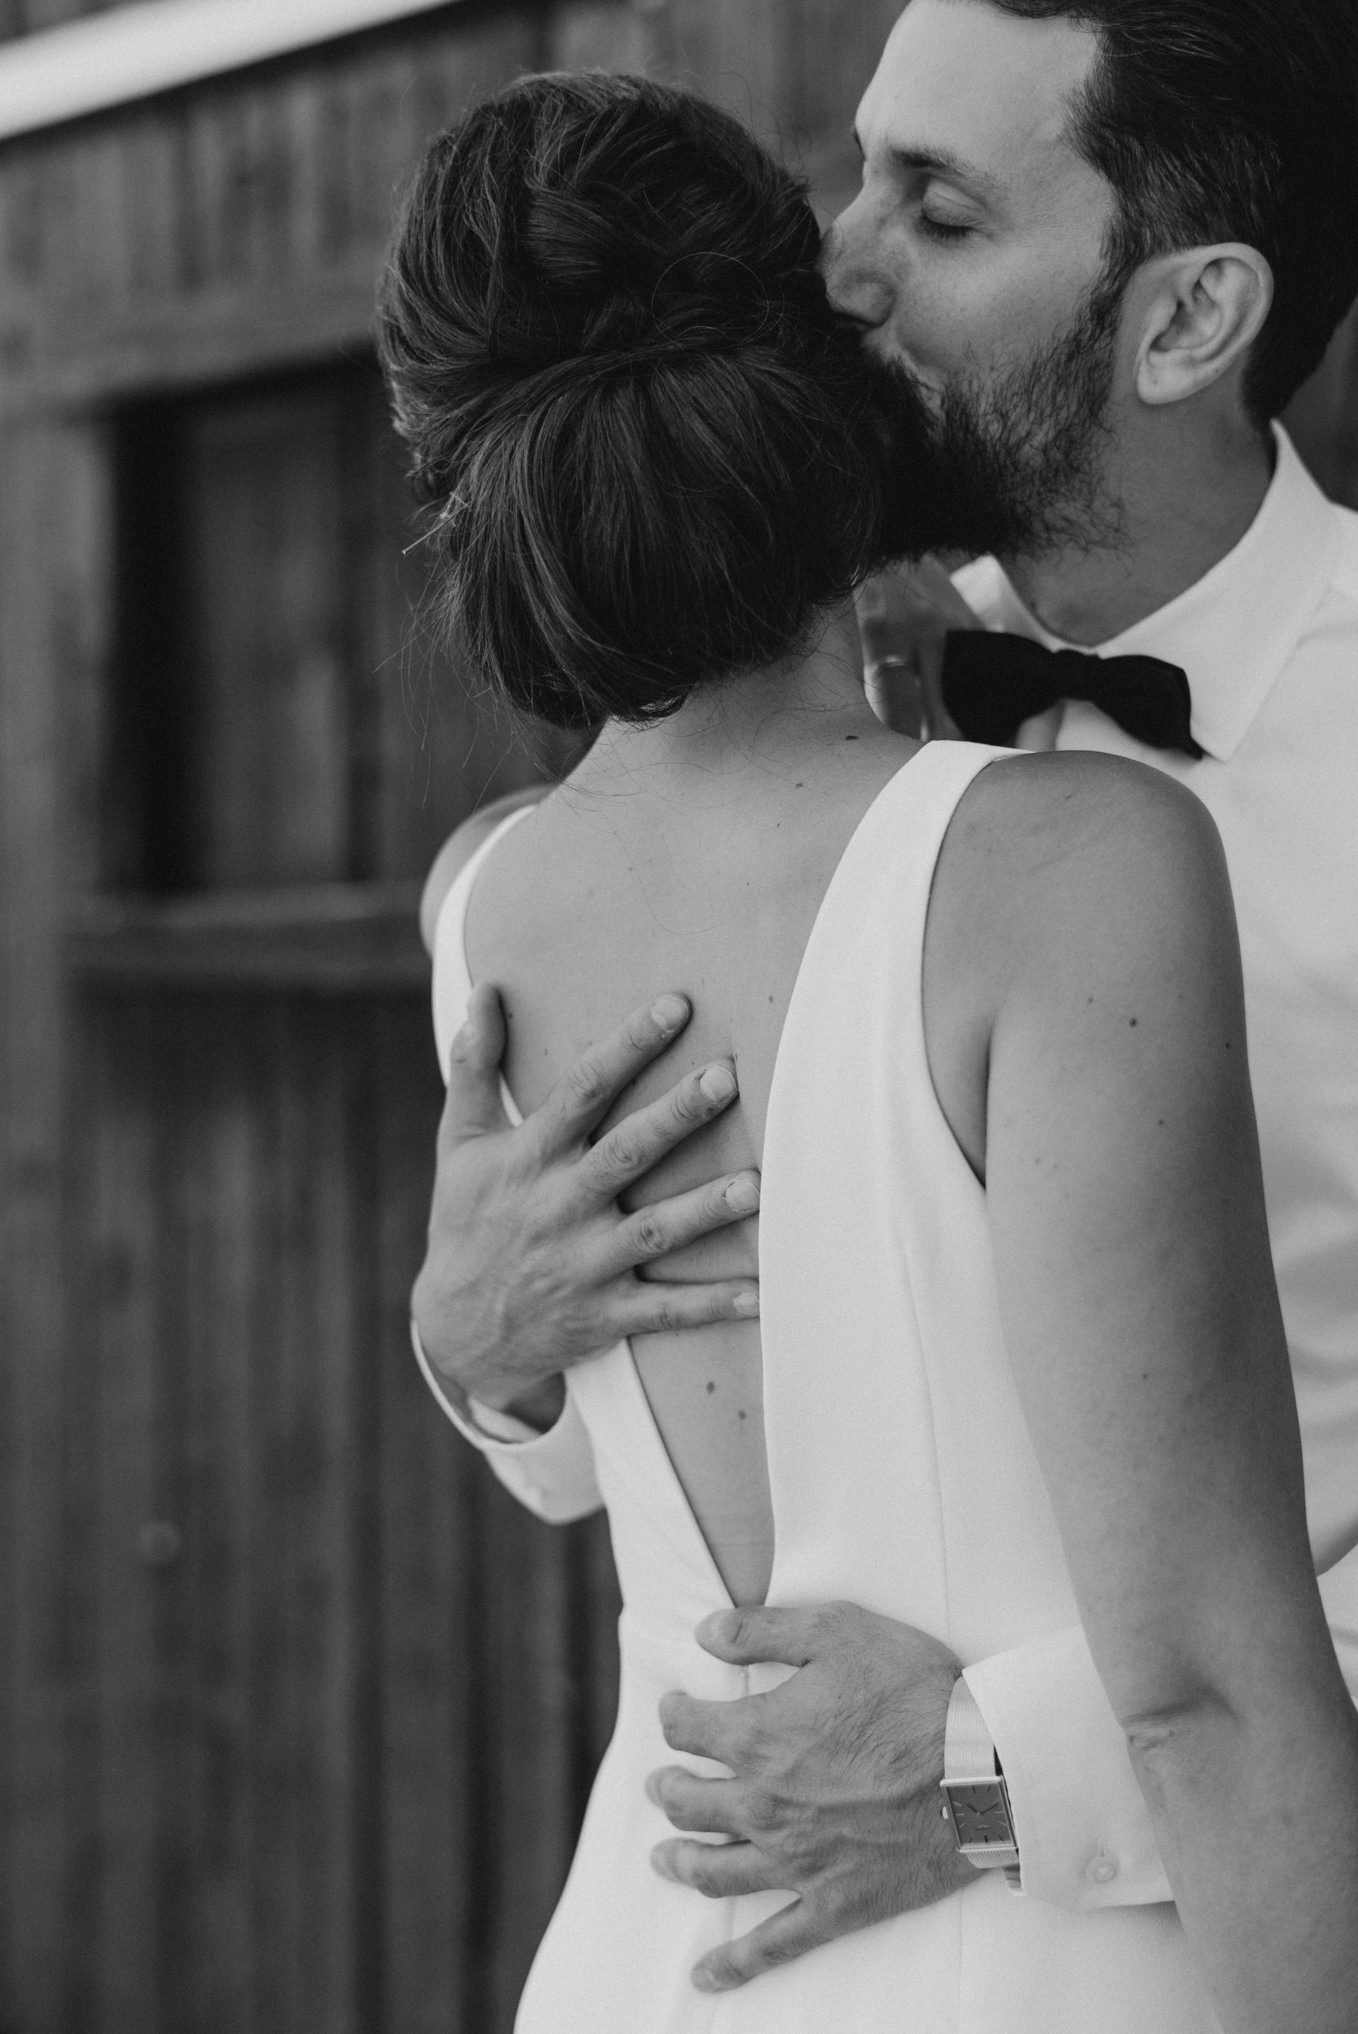 groom holding bride close as he kisses her head